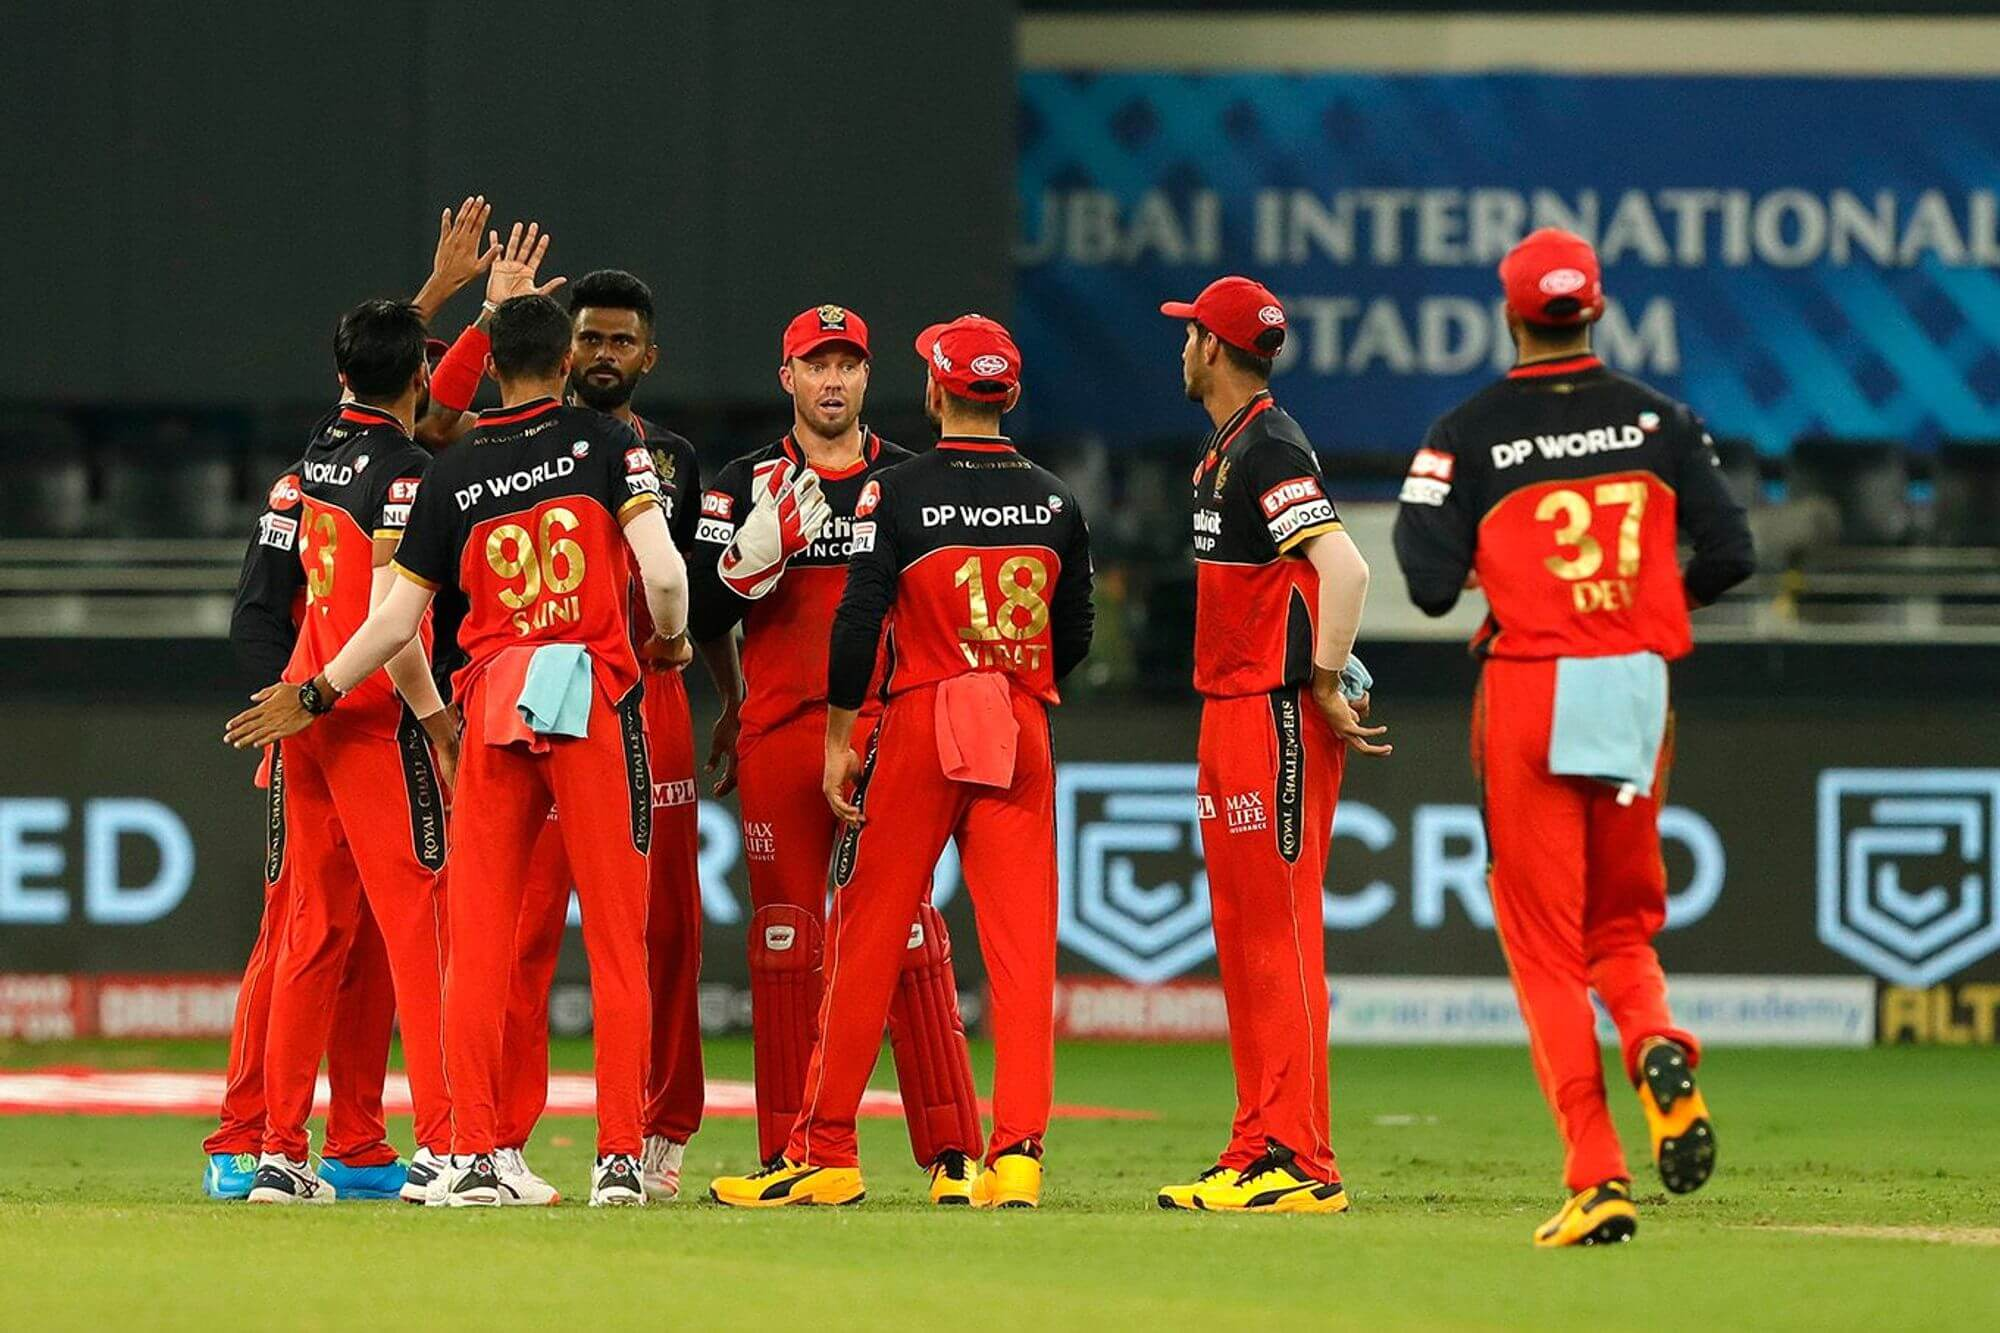 IPL 2021: Royal Challengers Bangalore shines after sealing a 6-run win against Sunrisers Hyderabad